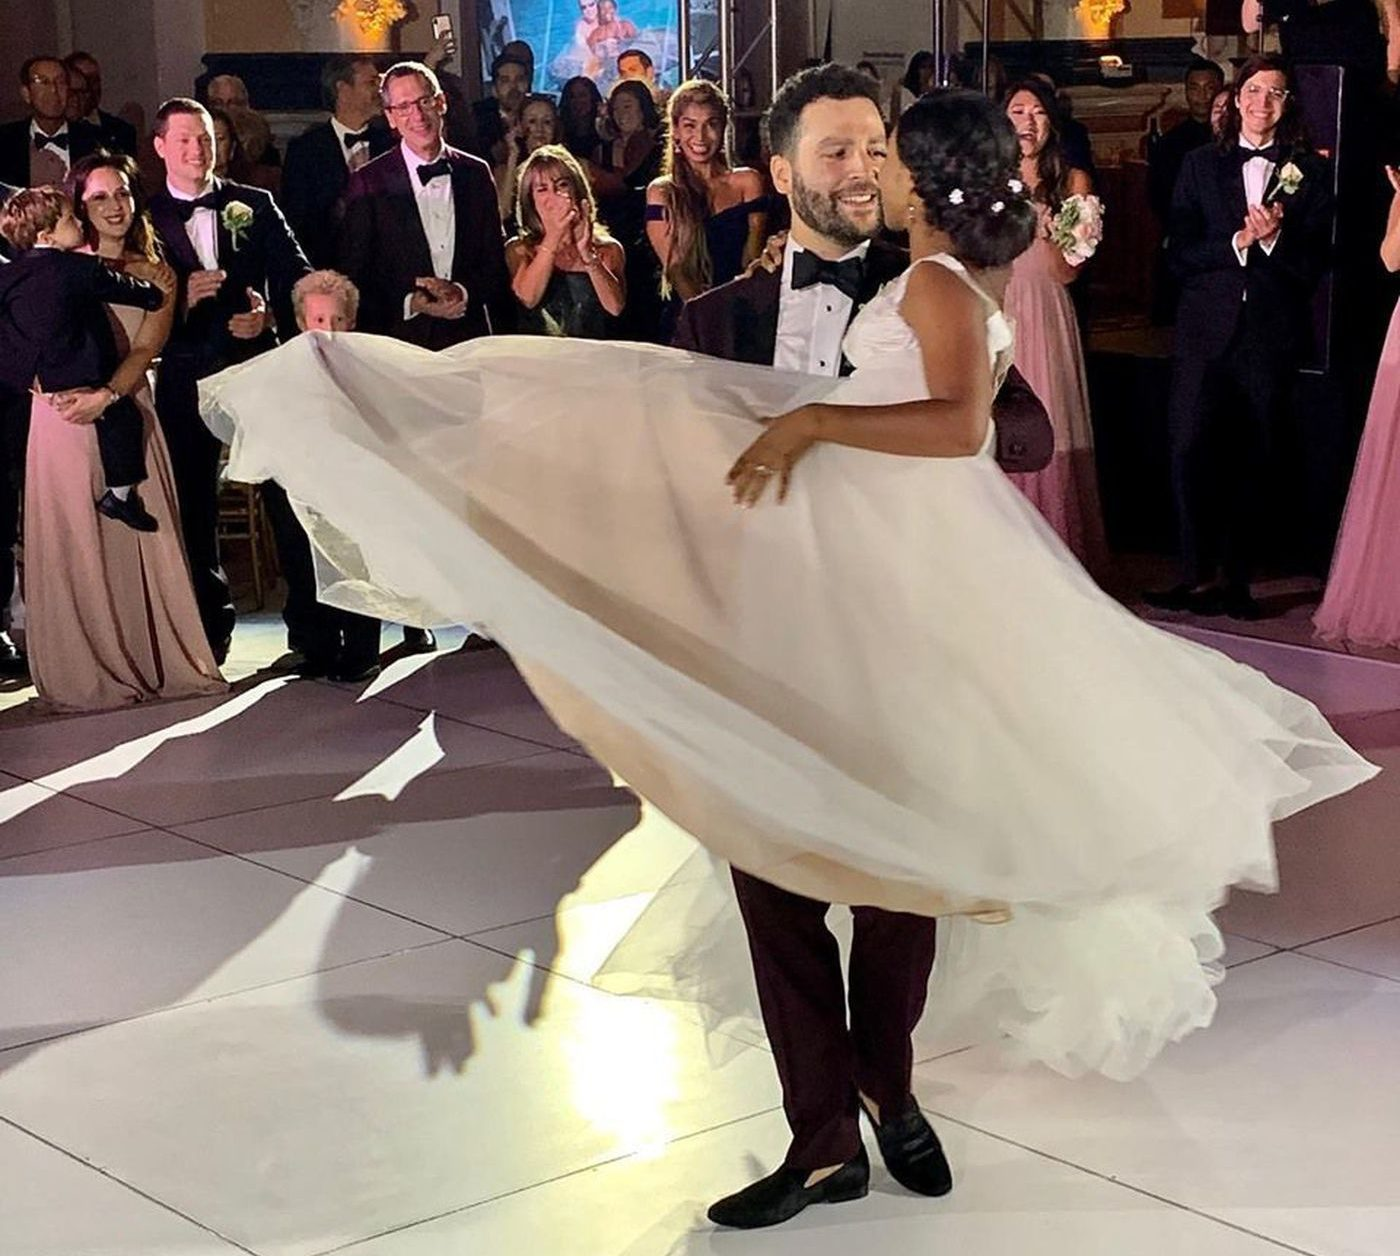 New Year's Celebration in Lower Merion Leads Couple On Path to Dream Wedding